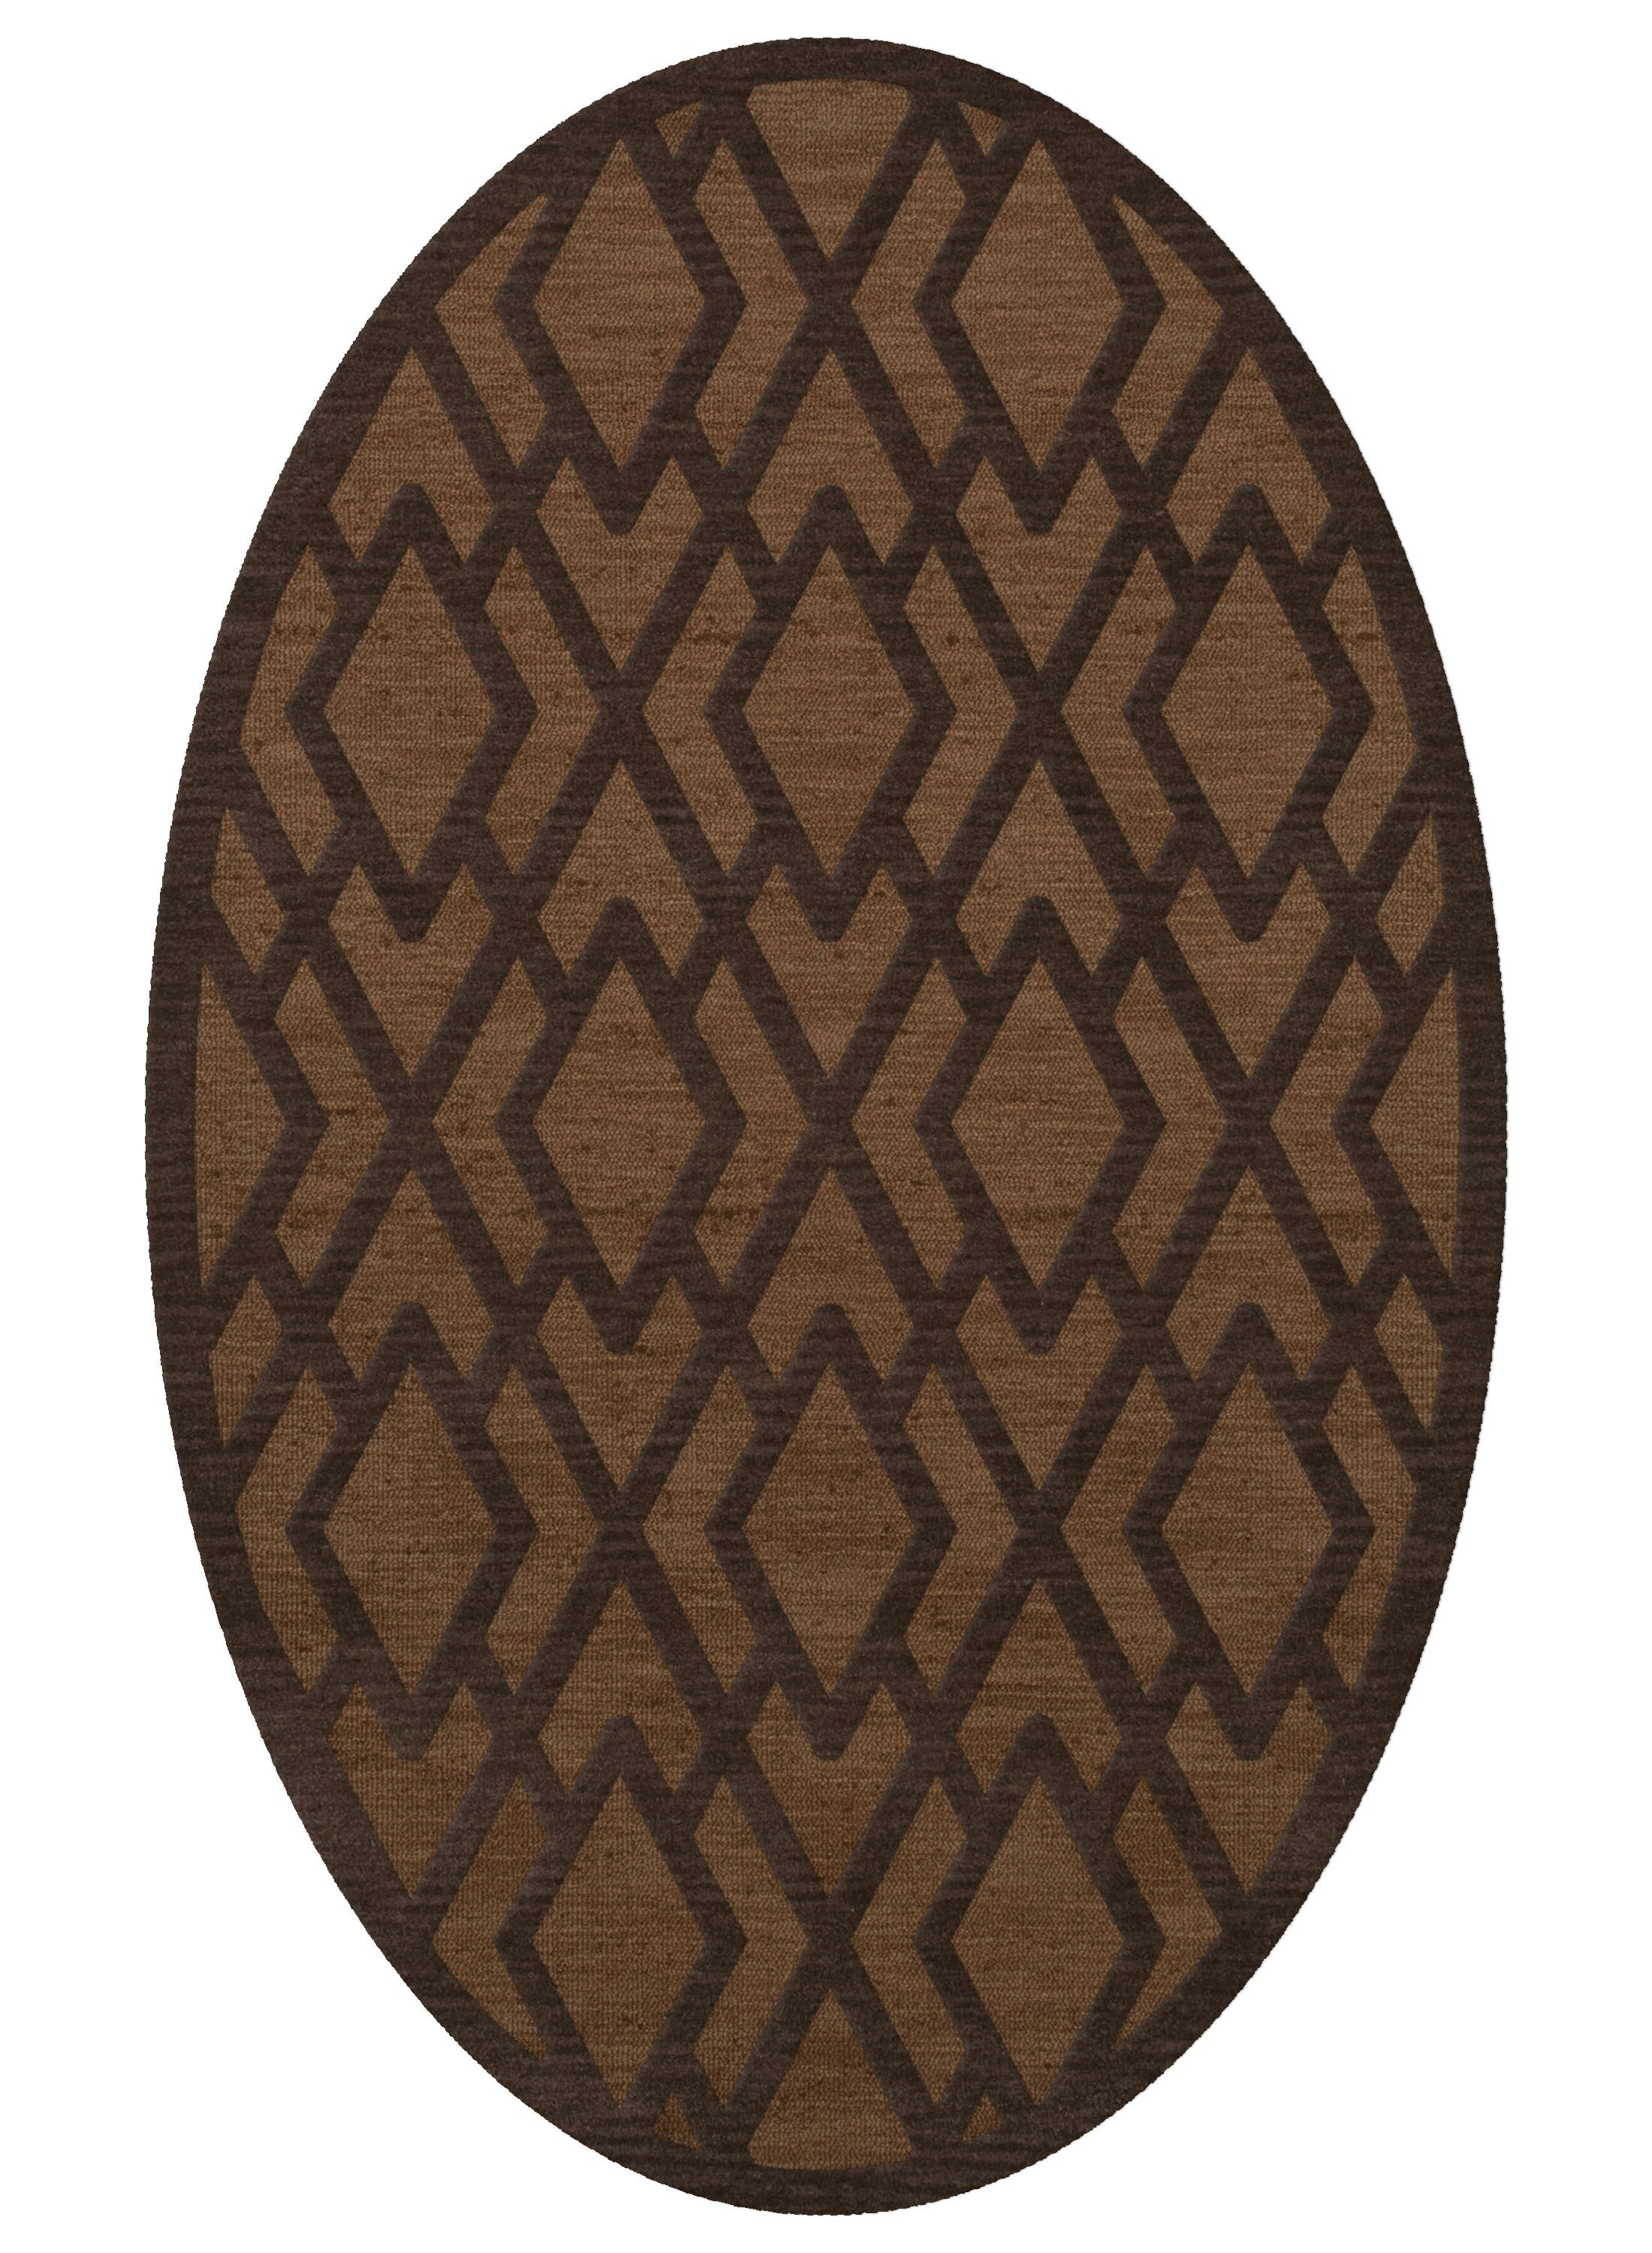 Dover Tufted Wool Caramel Area Rug Rug Size: Oval 6' x 9'